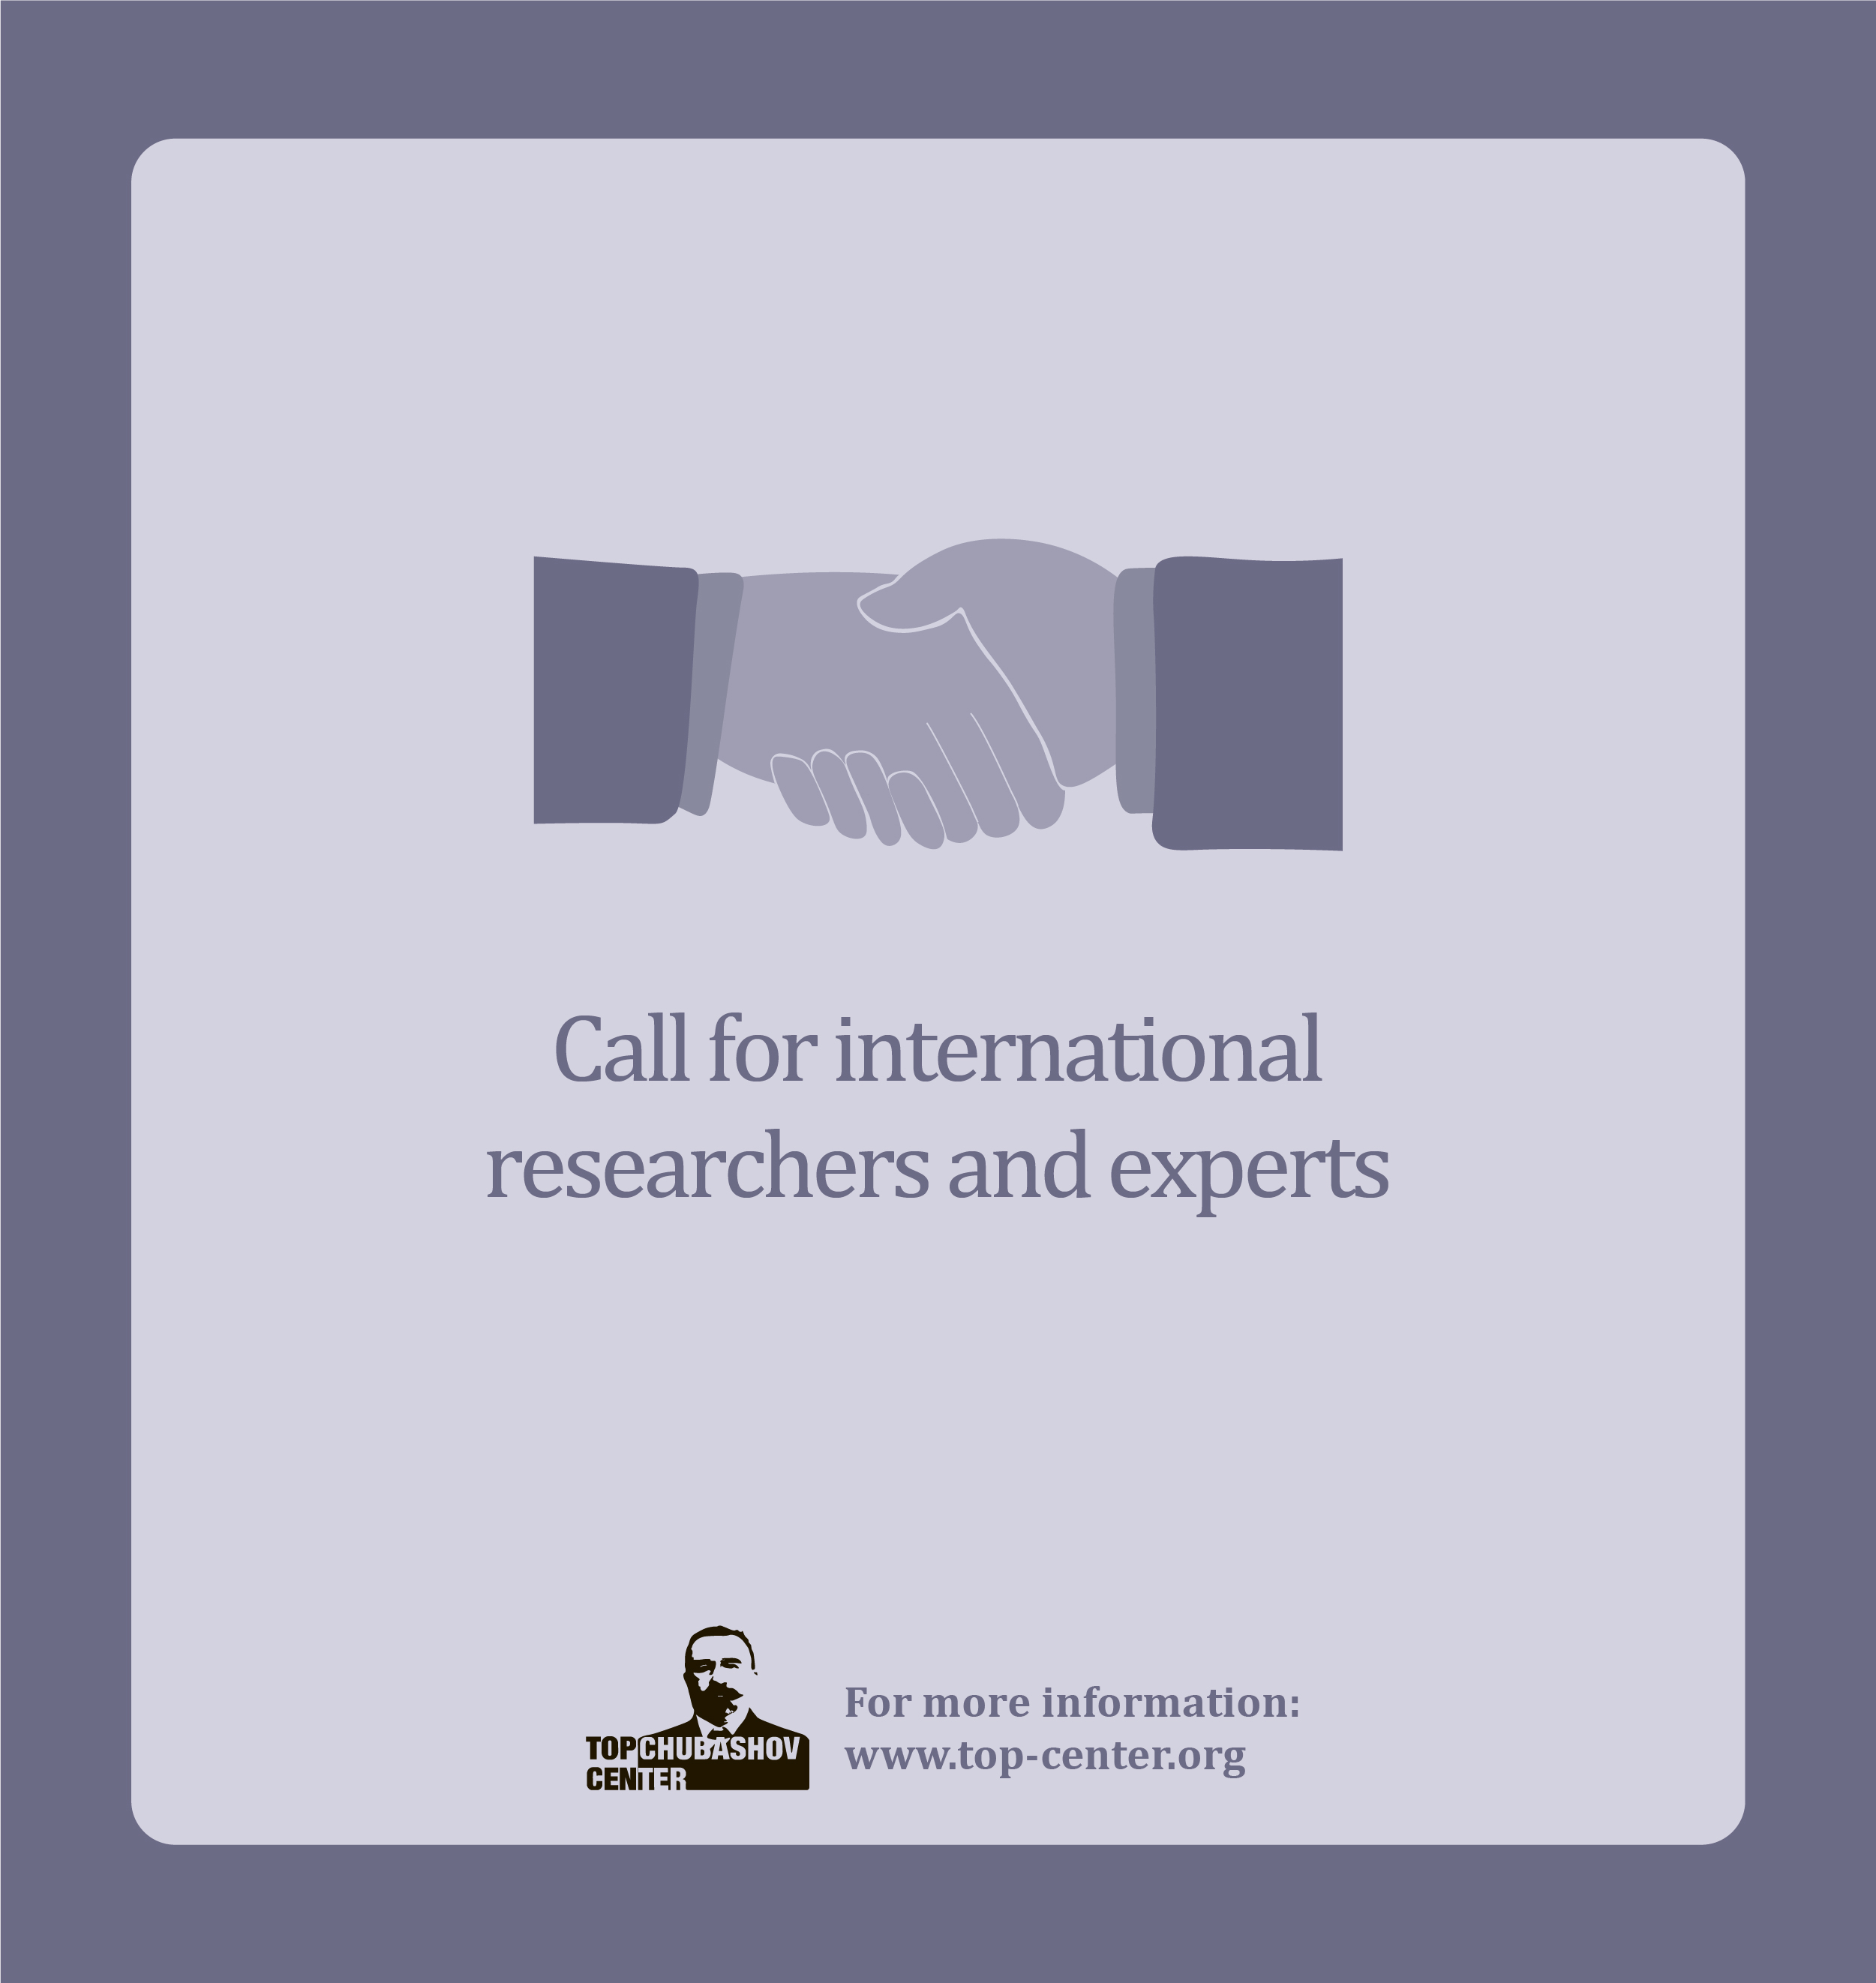 Call for foreign researchers and experts